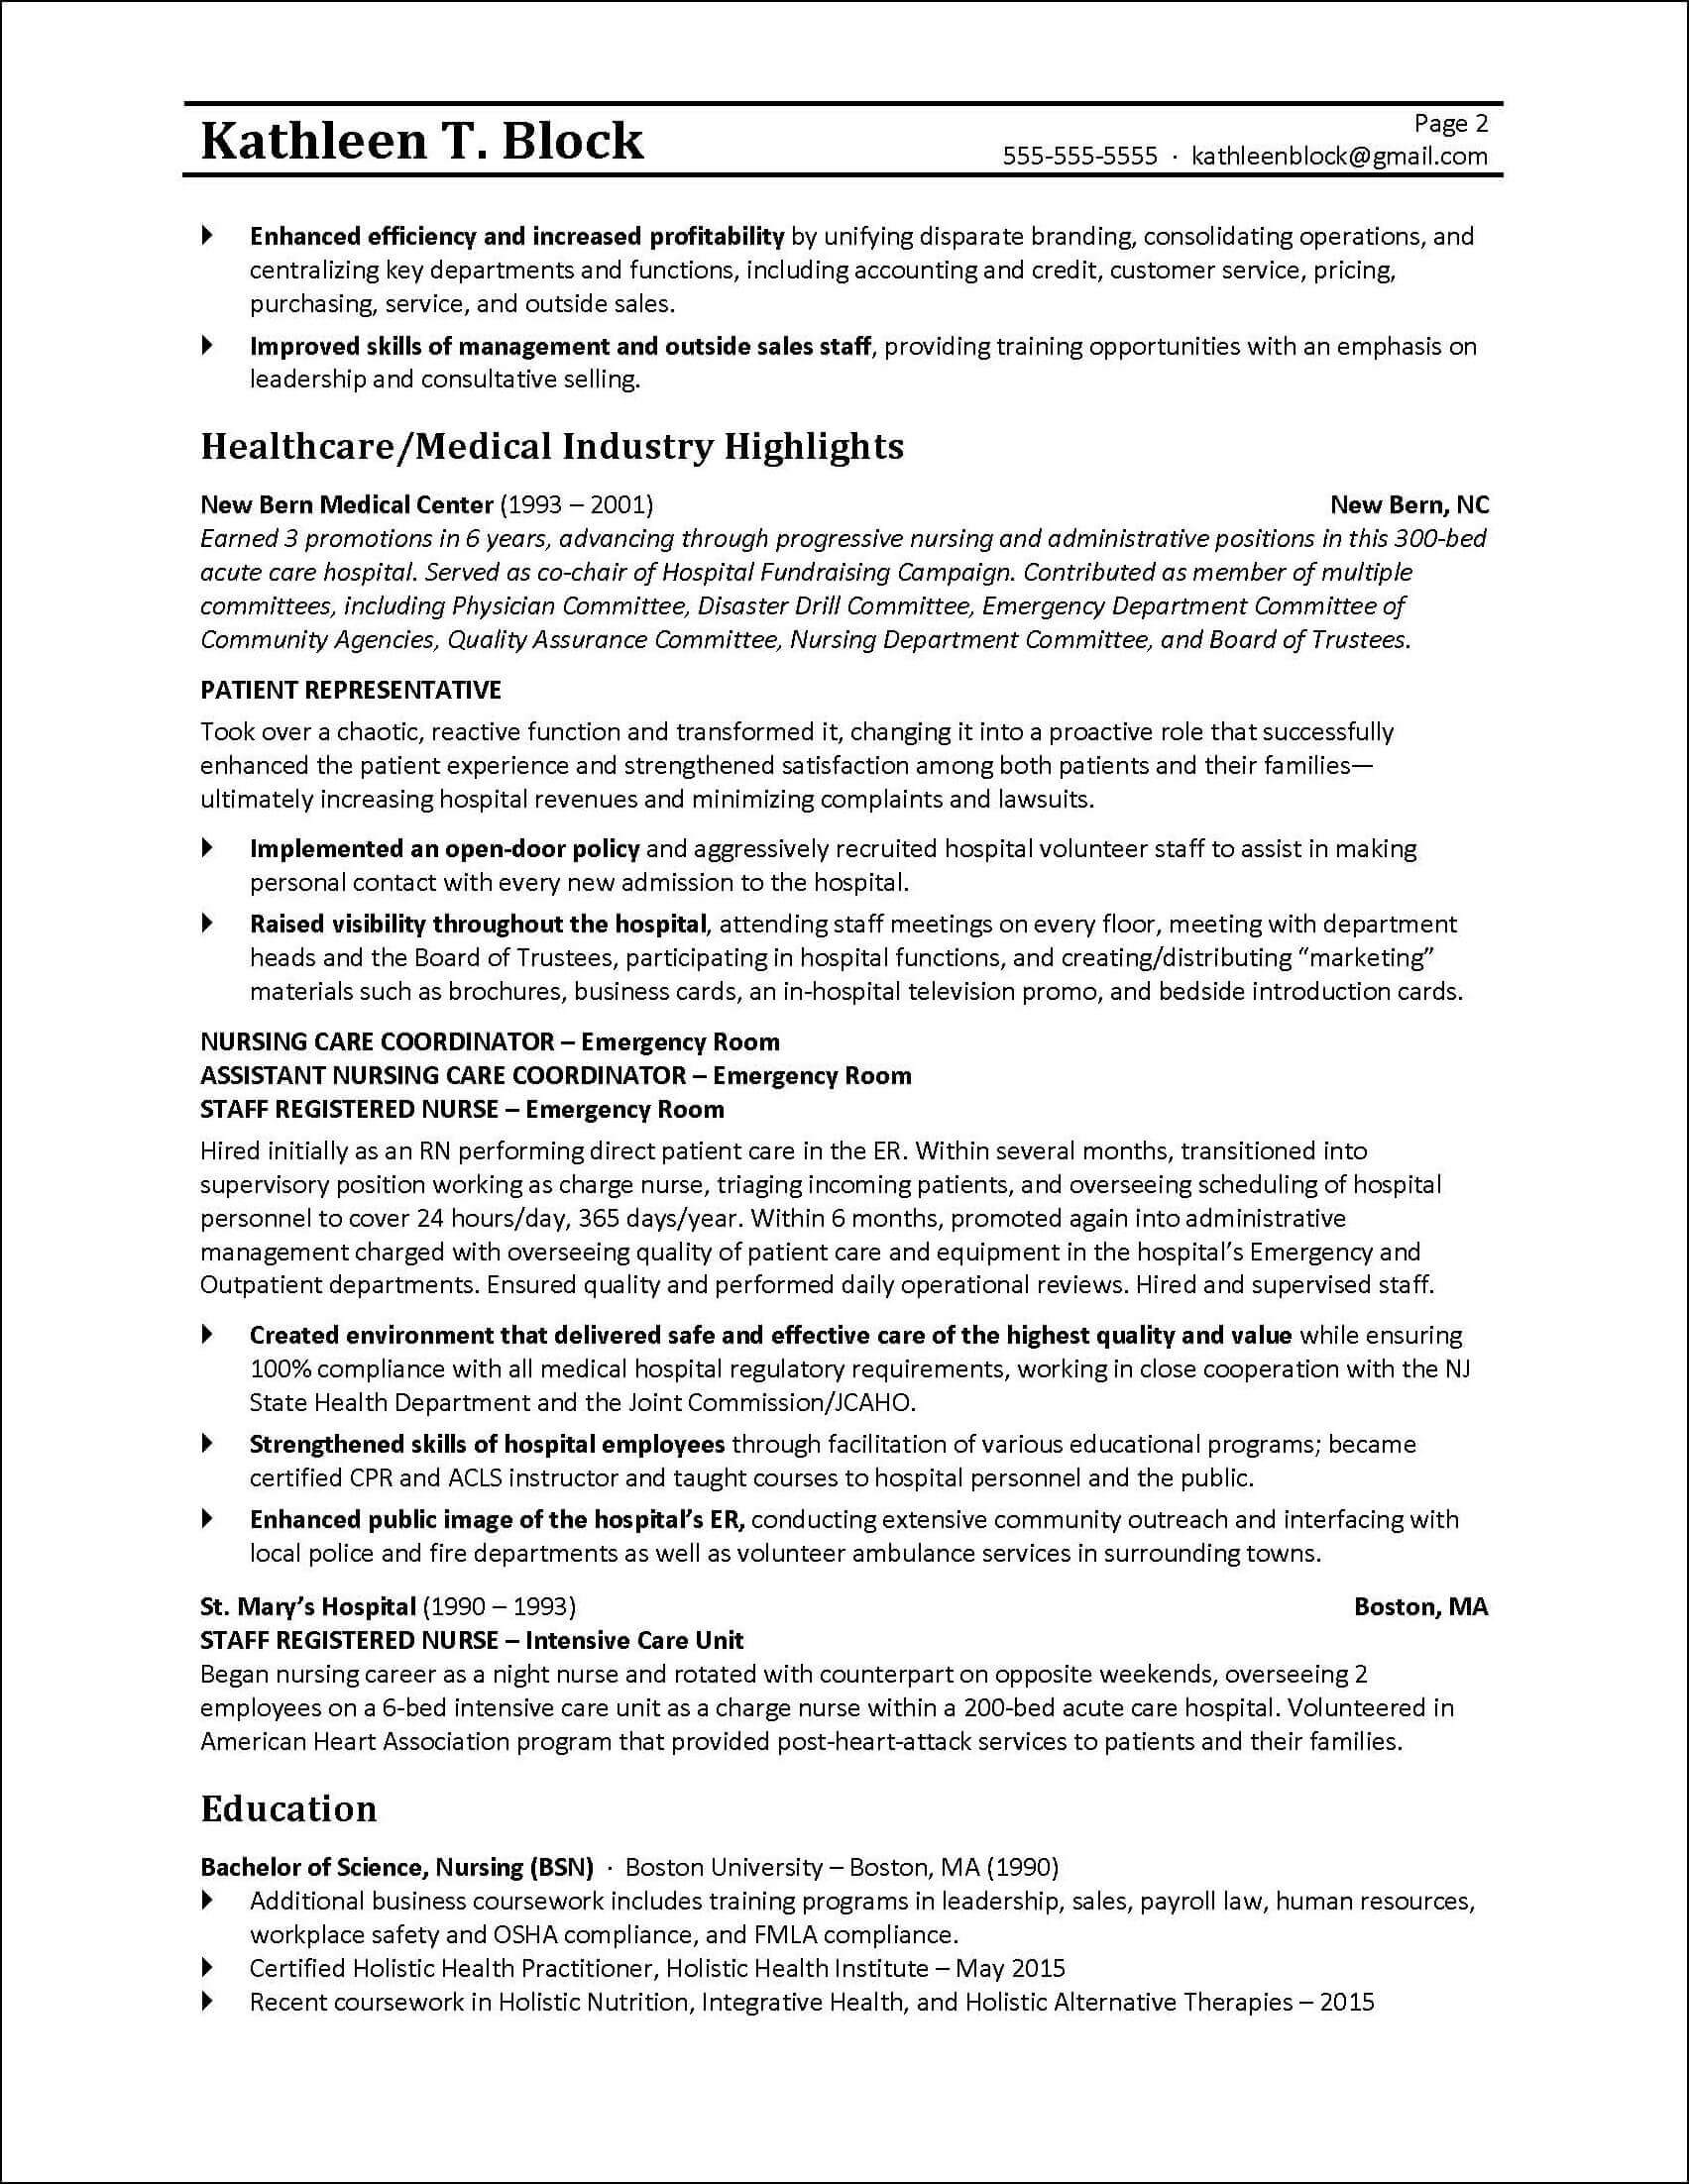 resume tips 2nd page of a resume written for a former business owner - Resume For Hospital Job